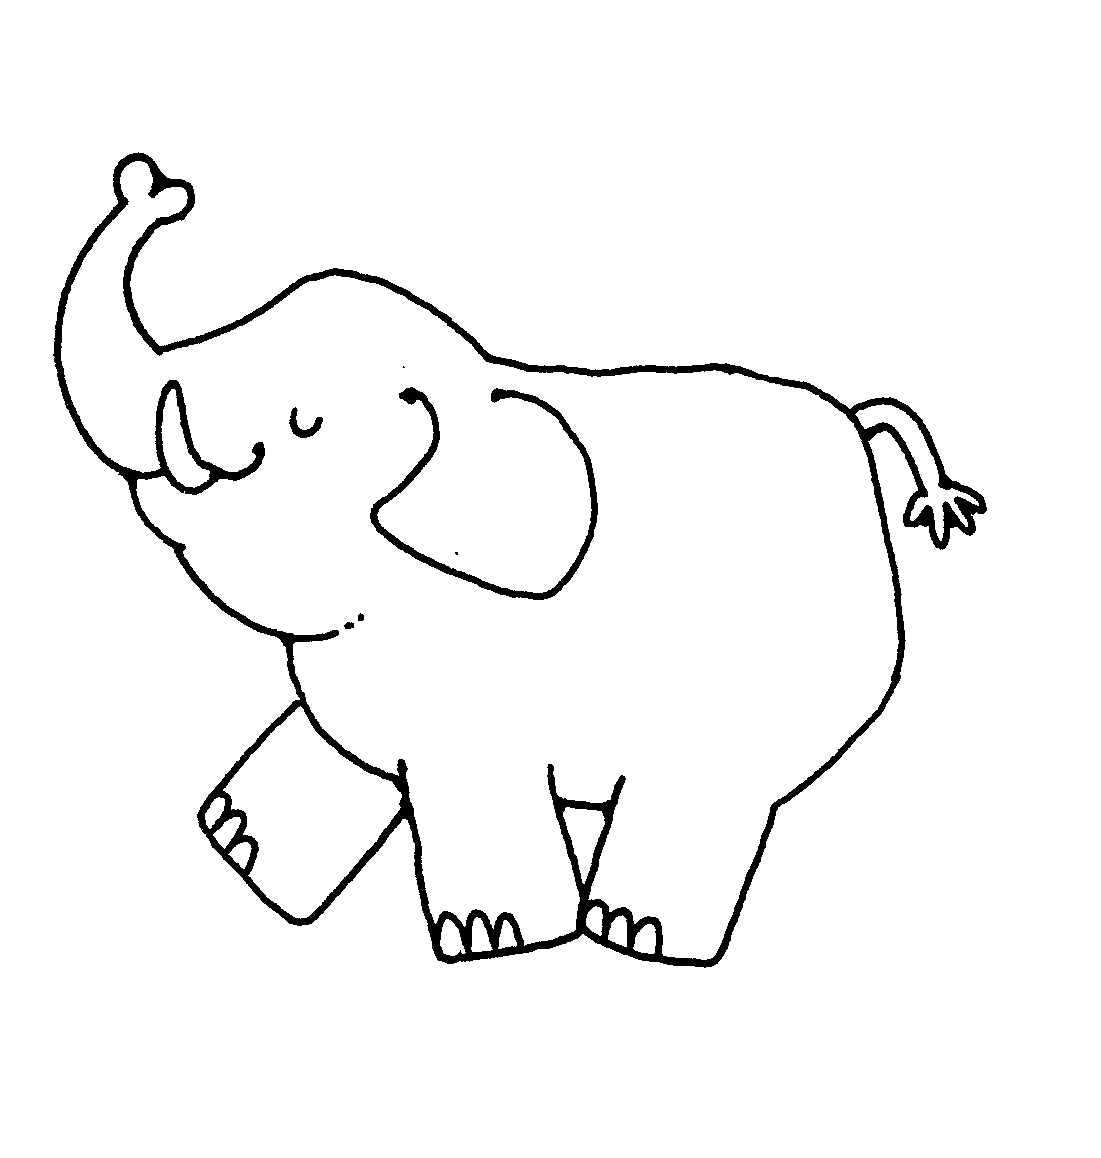 Elephants clipart black and white